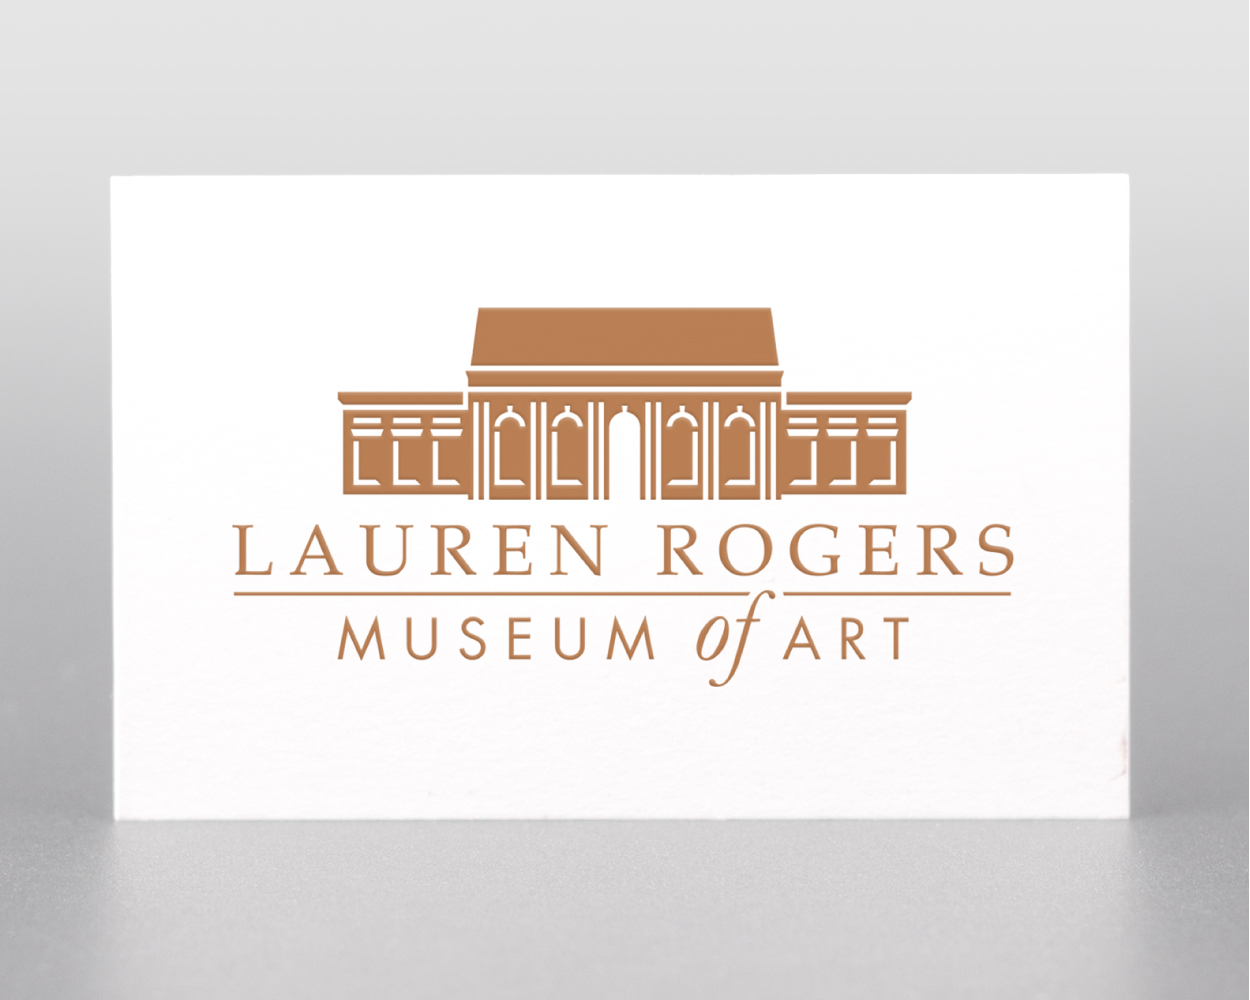 LAUREN ROGERS MUSEUM OF ART   SEE FULL PROJECT »